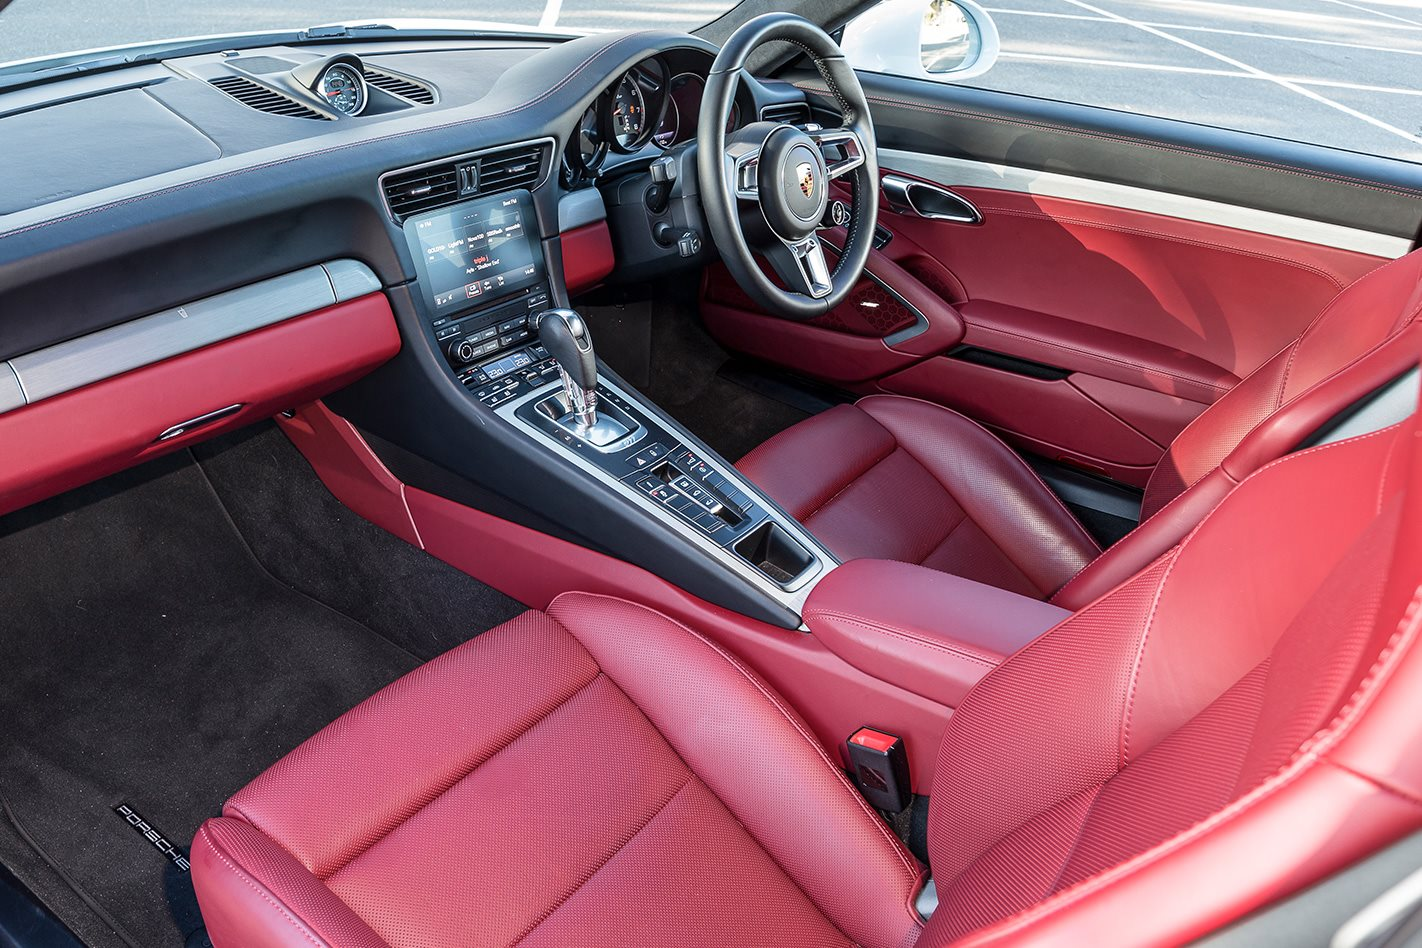 2017 Porsche 991.2 911 Turbo interior